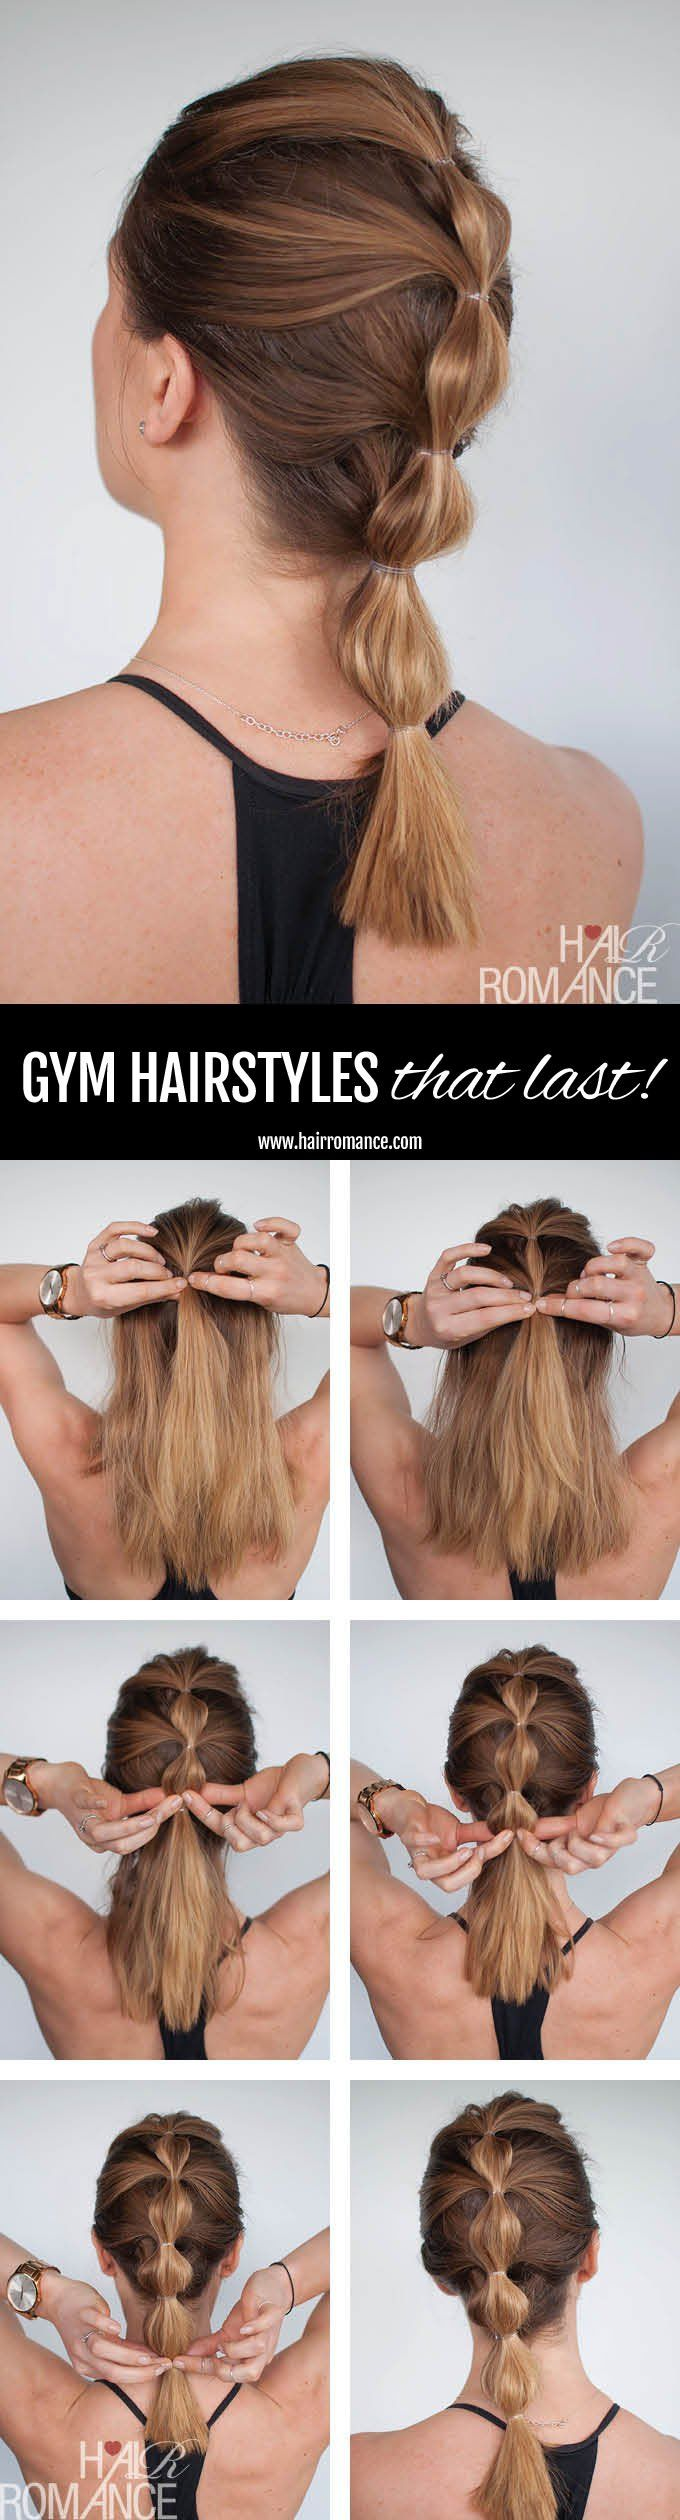 quick and easy hairstyles for the gym six sistersu stuff hair